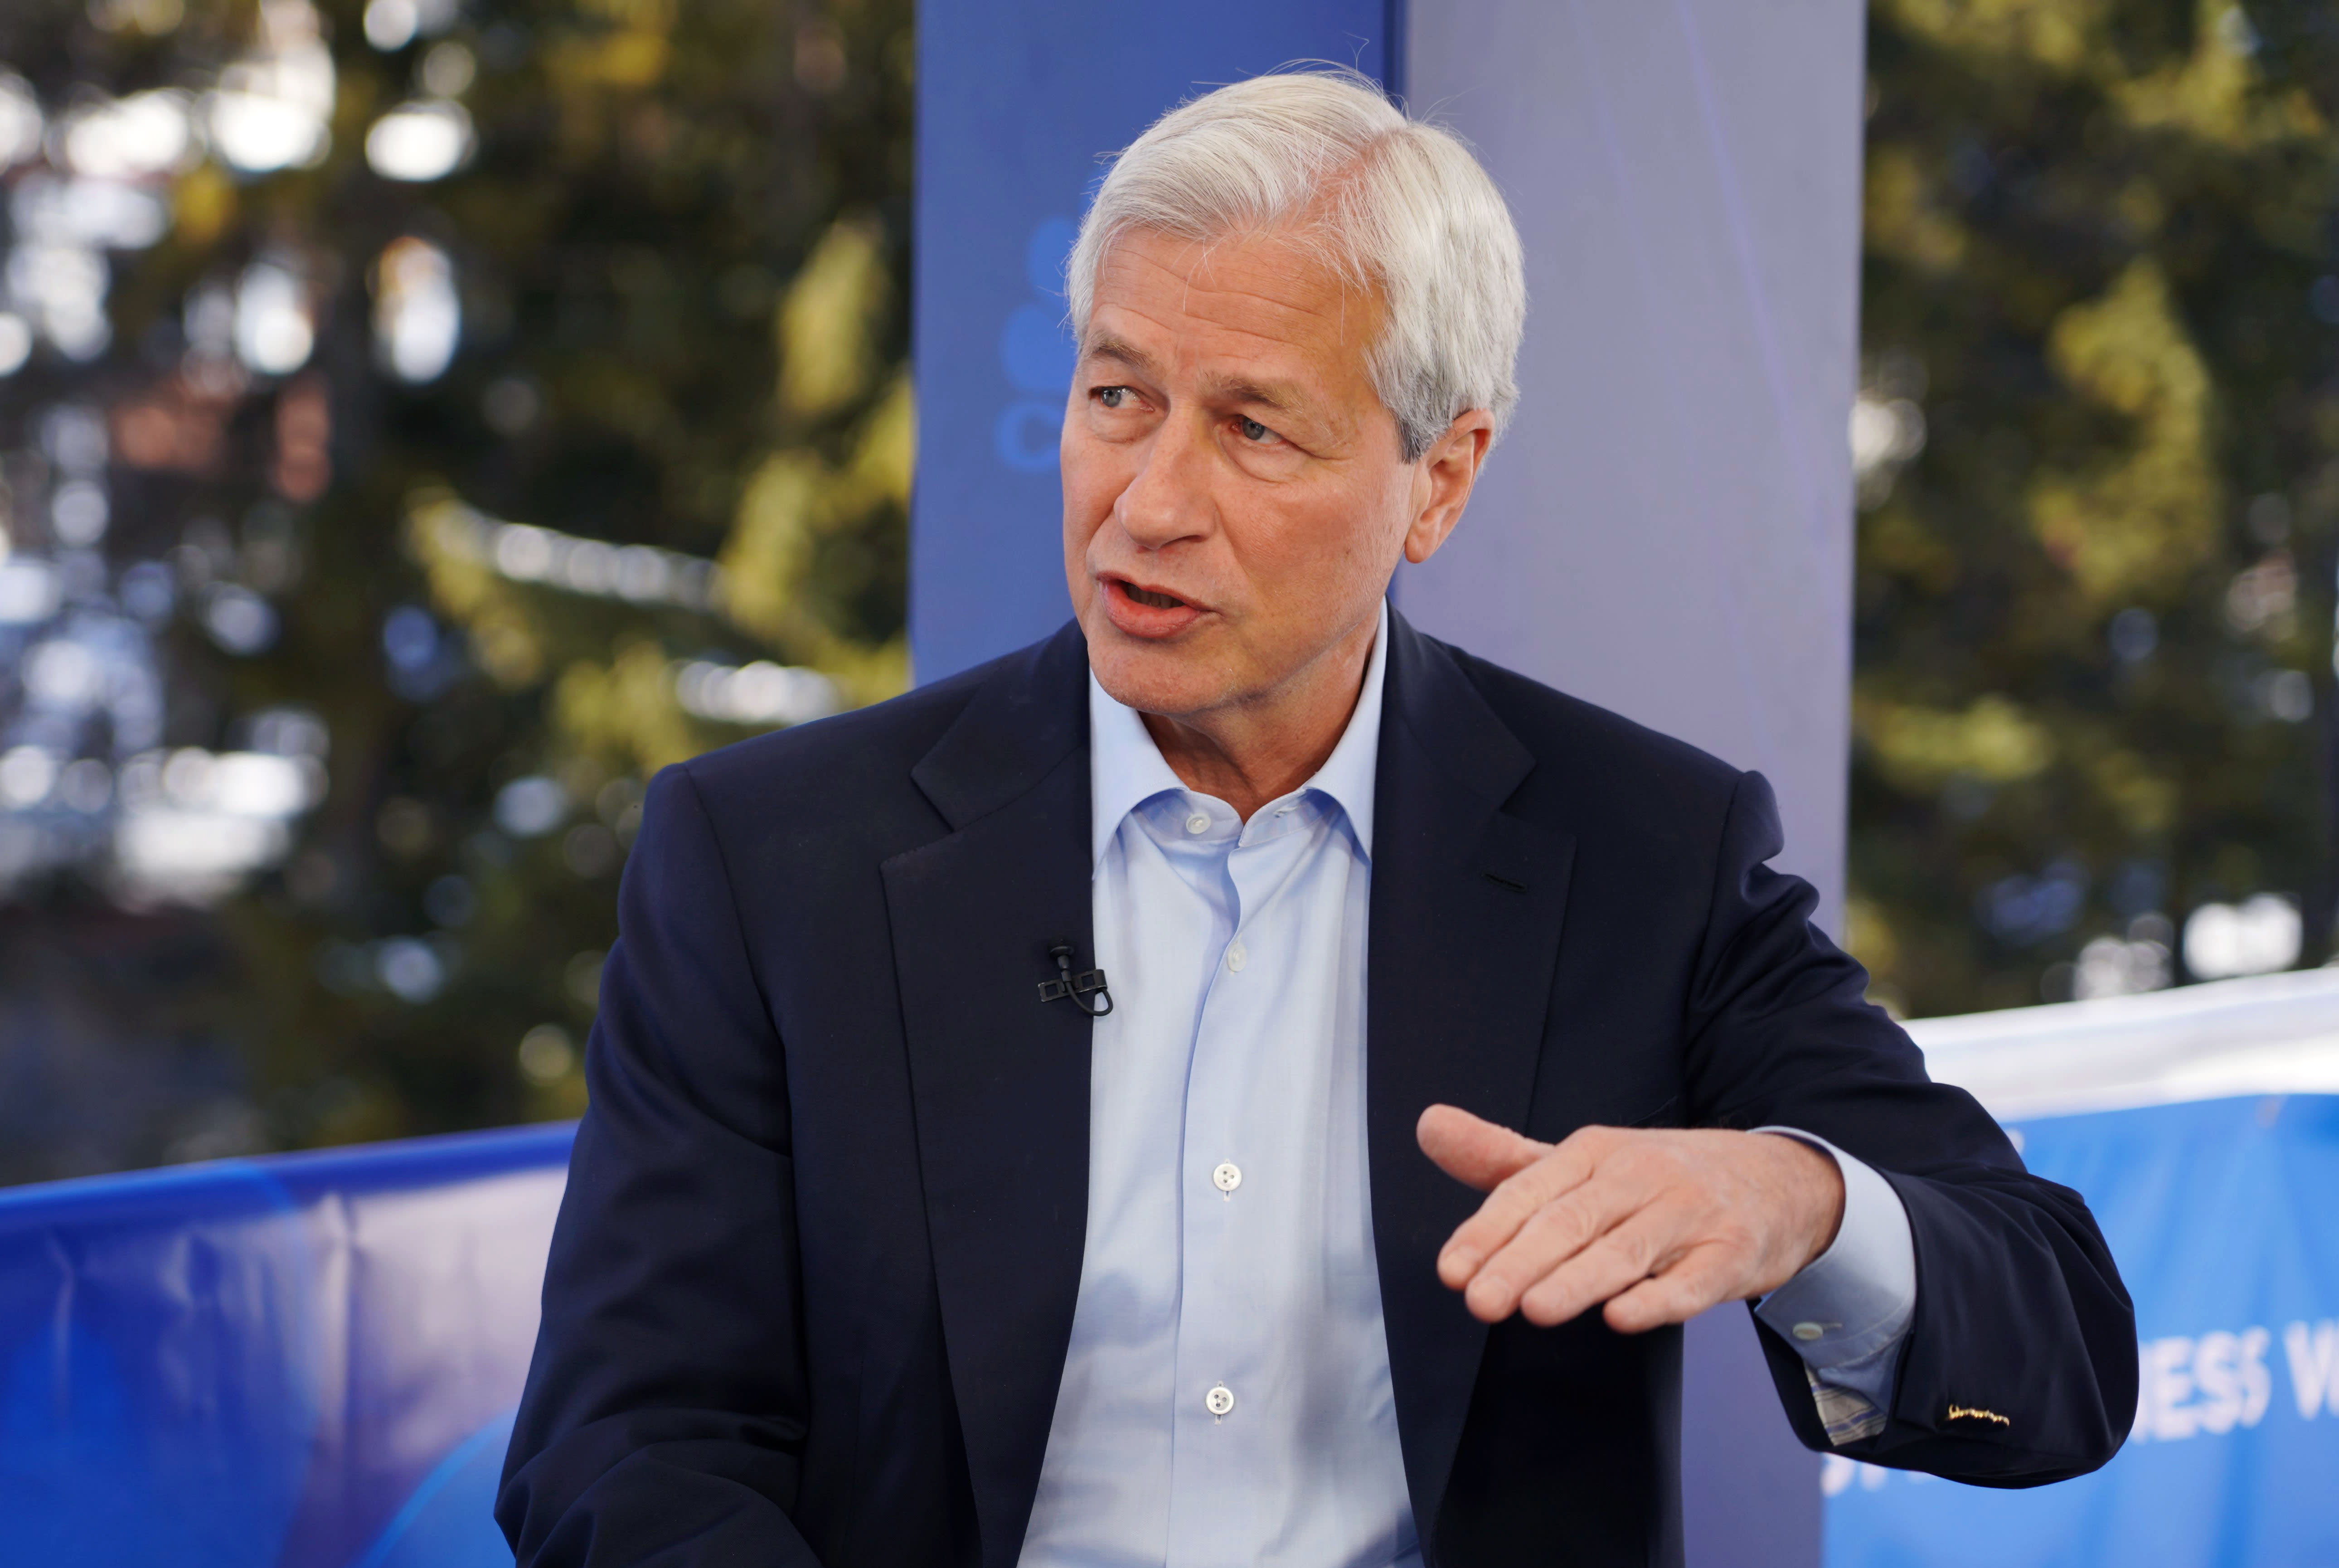 JPMorgan beats profit estimates on better-than-expected credit trading revenue – CNBC